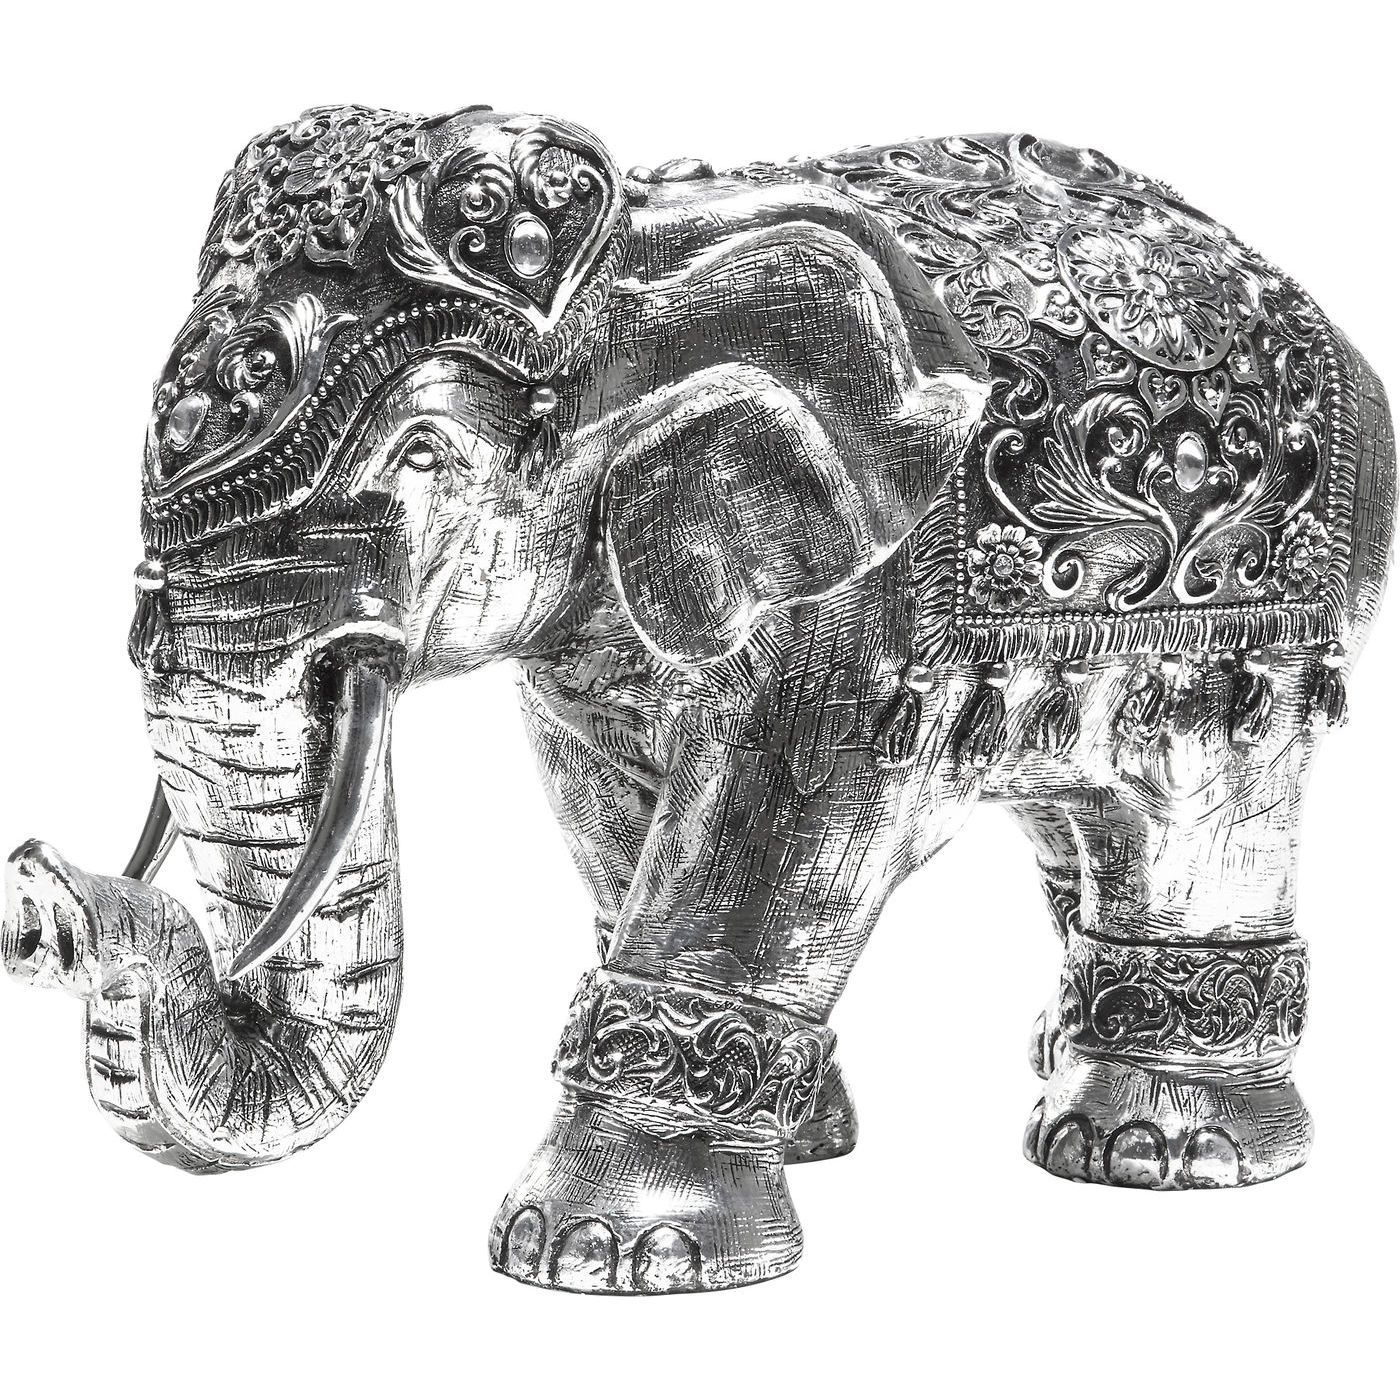 3334fc45ce7 Deco Figurine Elefant 1001 Nights 33cm - KARE Design  kare  karedesign    elephant  deocration  ethno  orient   deco  silver  interior  accessories   home   .